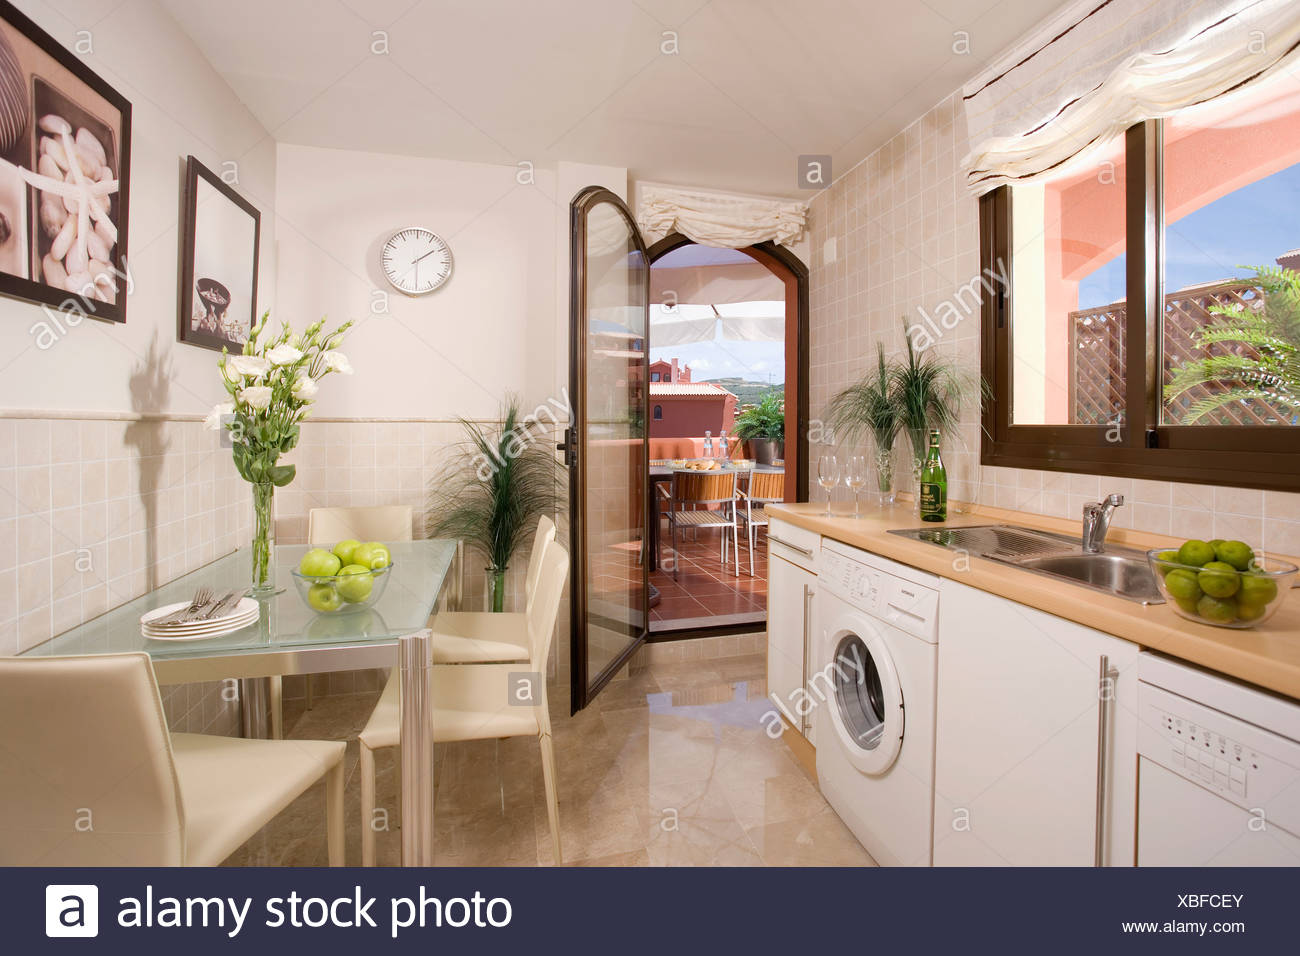 Glass Table And Beige Chirs In Small Galley Kitchen Diner In Spanish Holiday Apartment With Glass Door To Patio Stock Photo Alamy